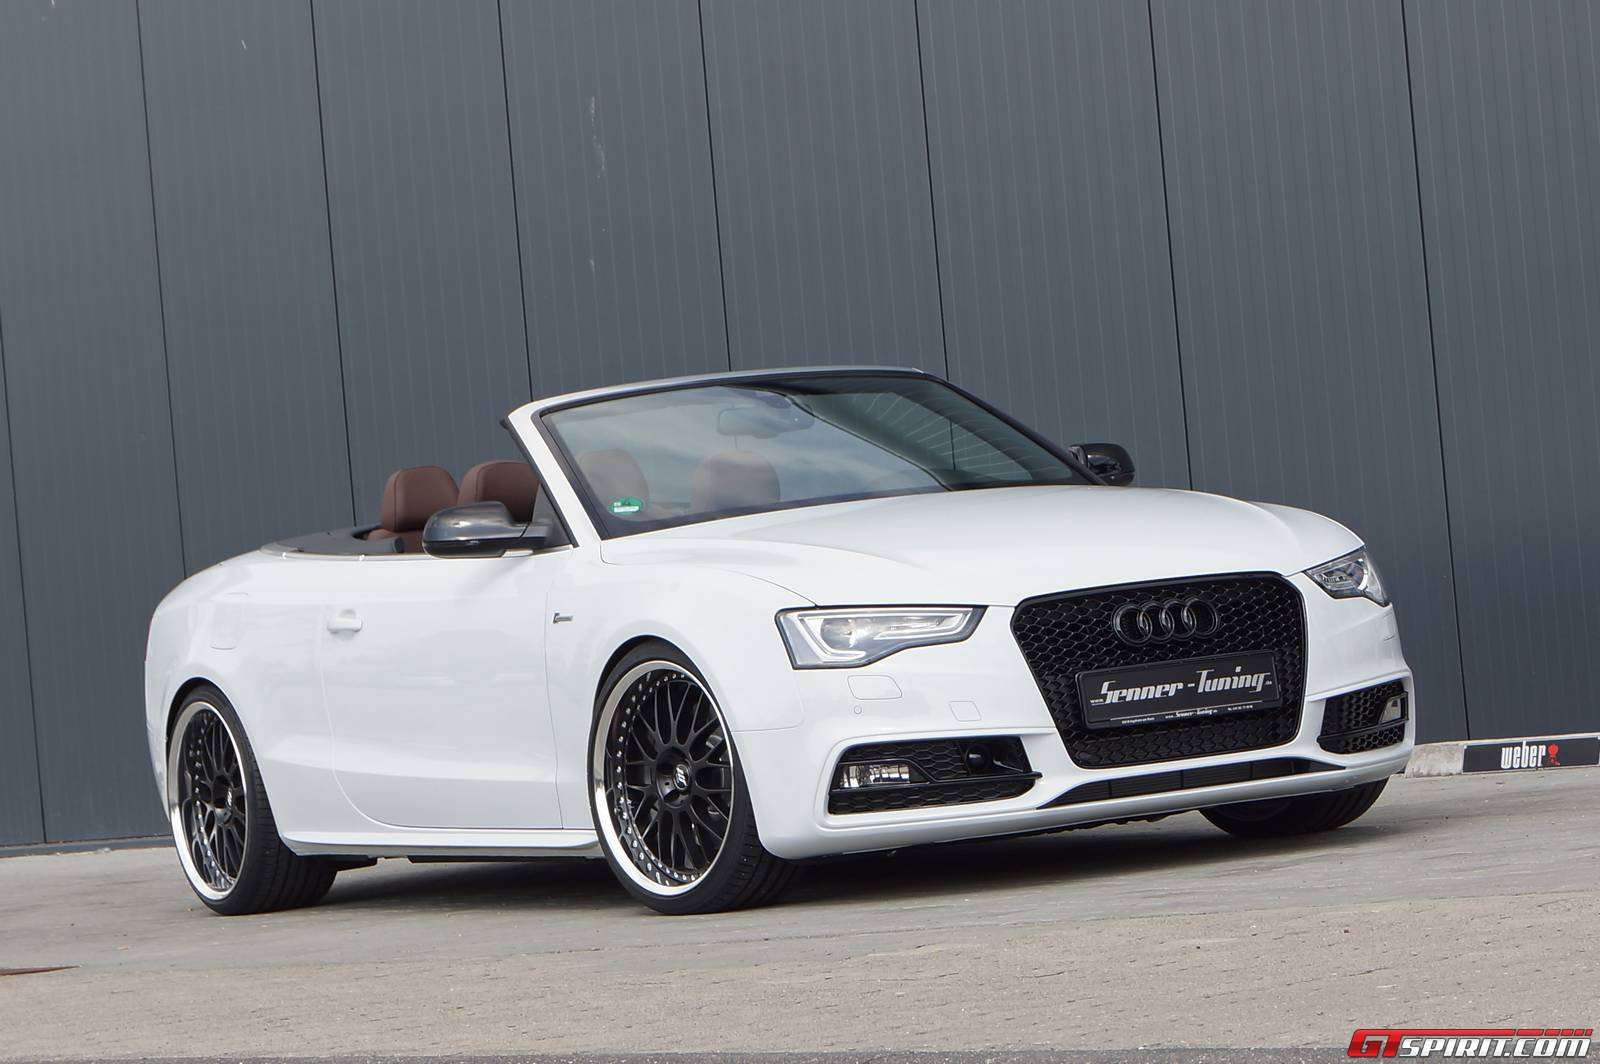 Official Glacier White Metallic Audi S5 Cabriolet By